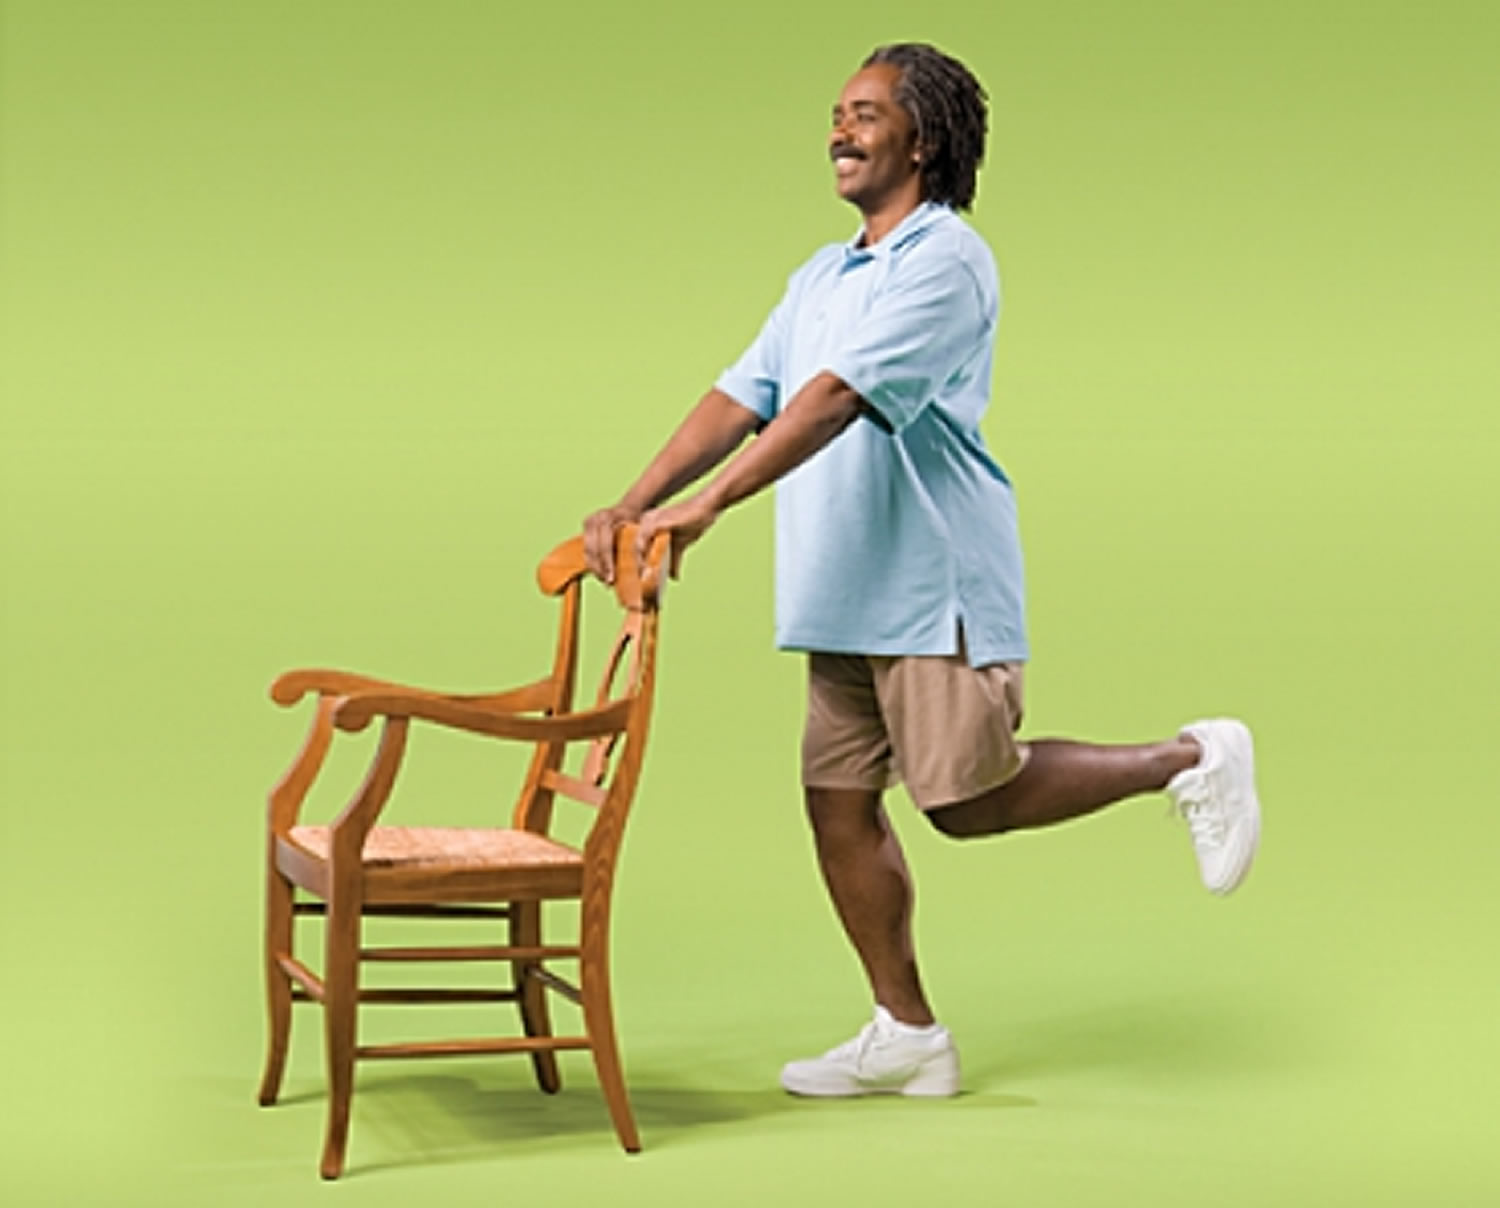 Knee Curl Strength Exercise for Seniors